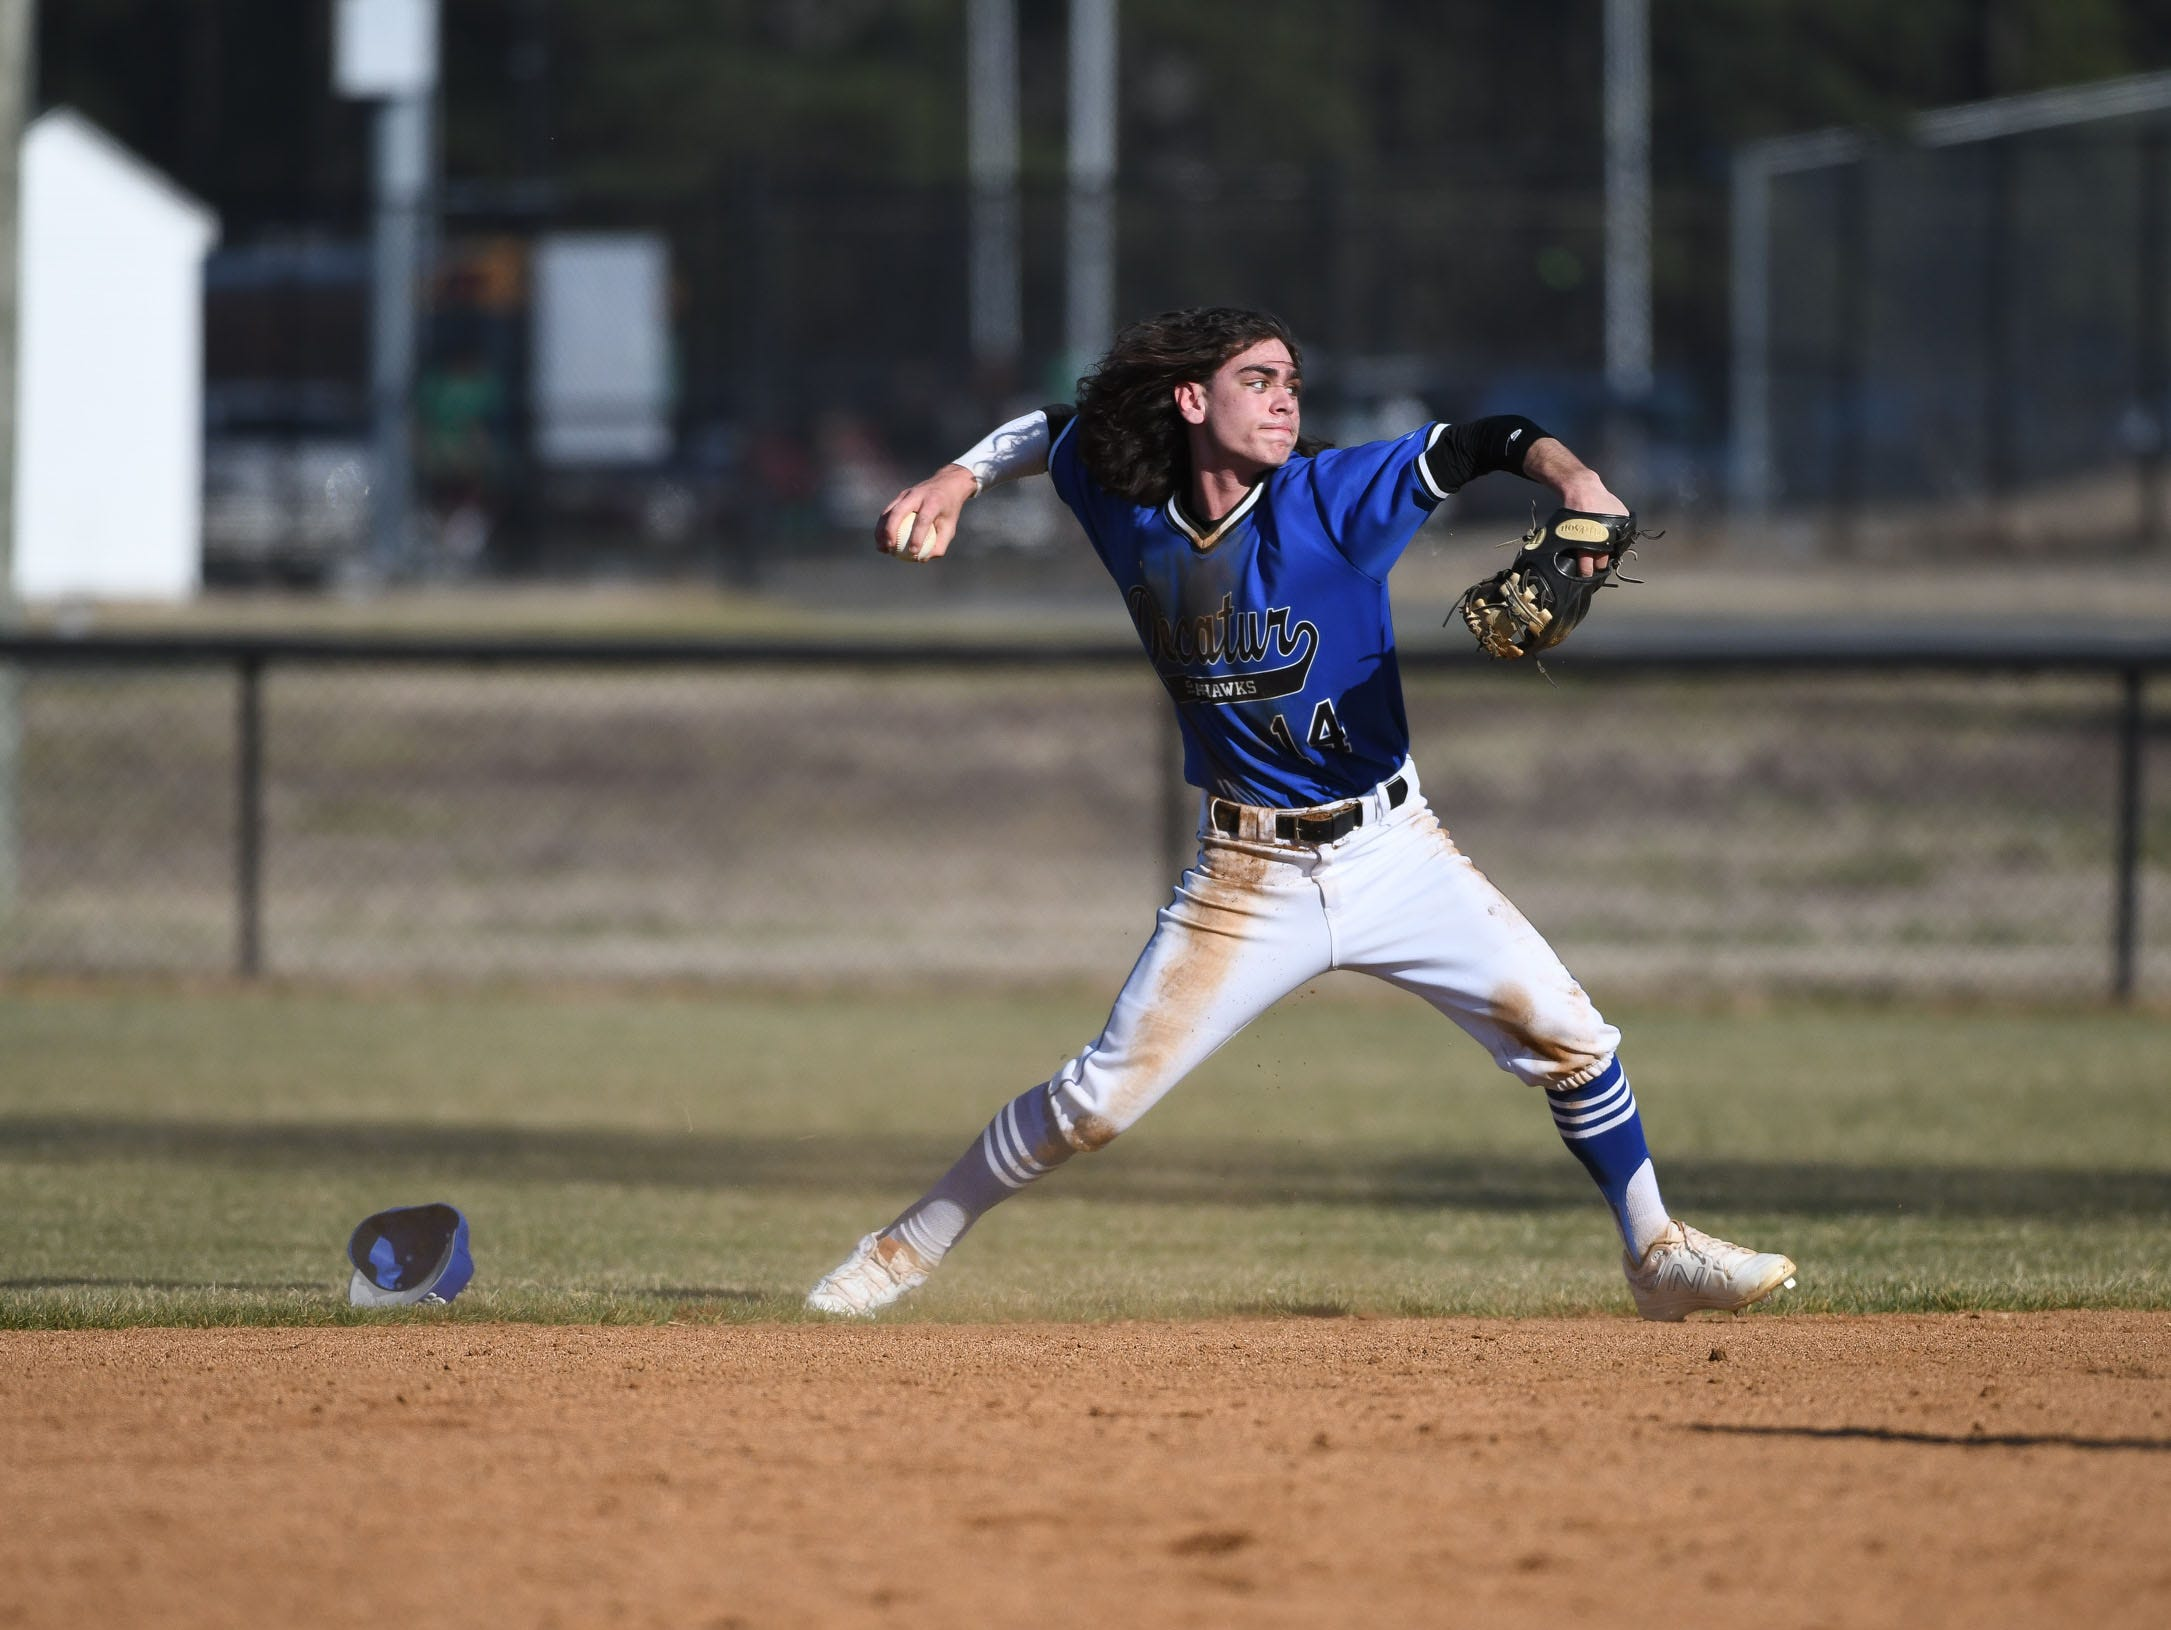 Stephen Decatur's Noah Ager with the play at second against Bennett on Thursday, March 28, 2019 in Salisbury, Md.